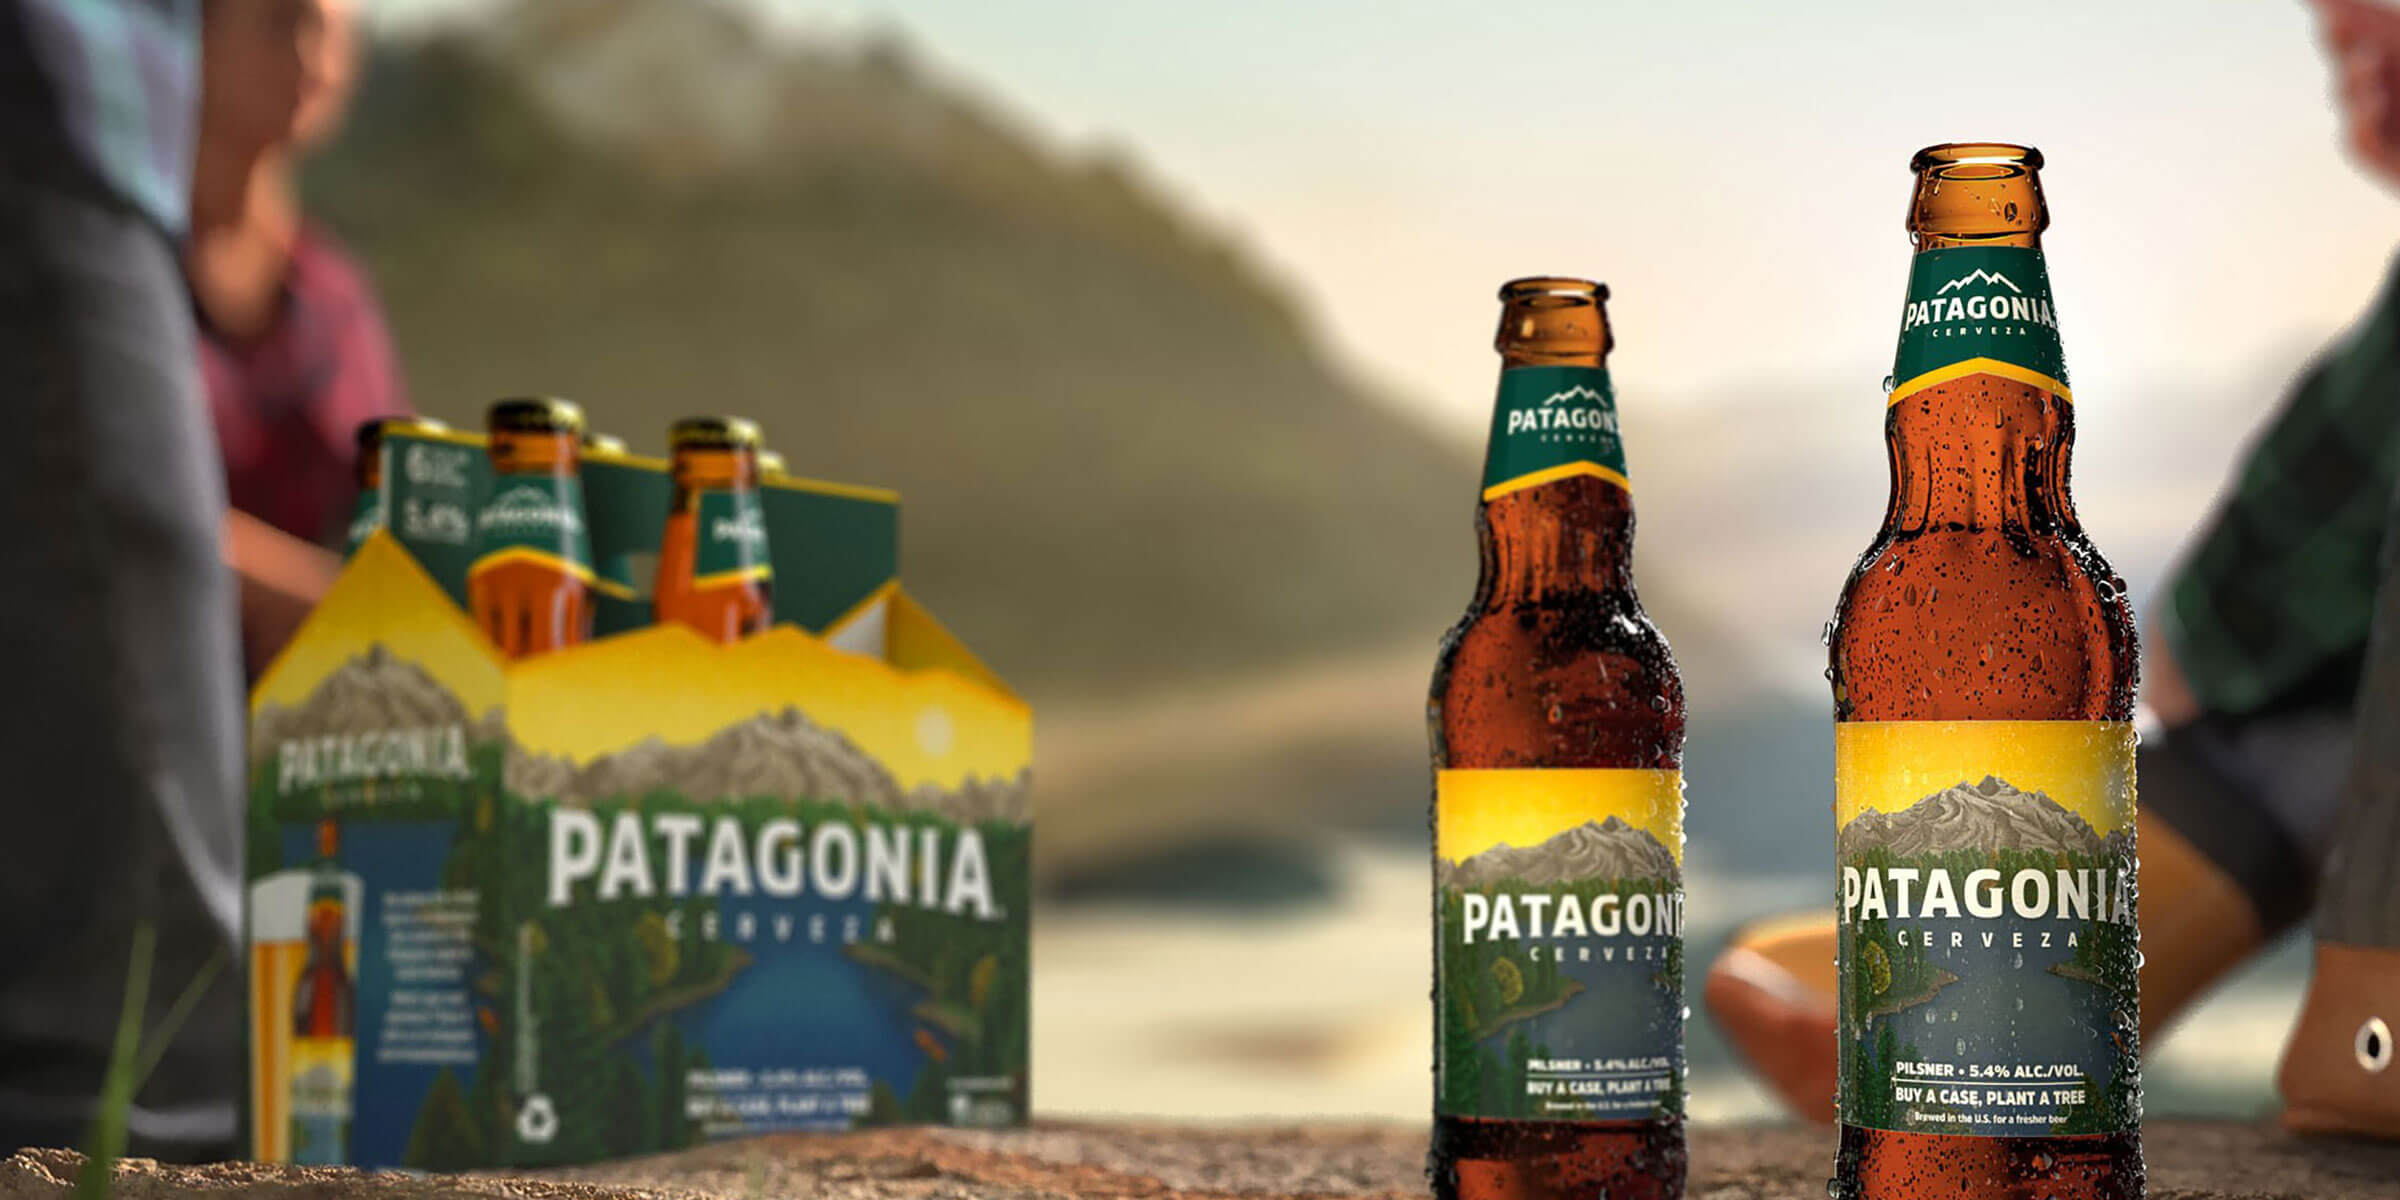 Cerveza Patagonia, a lager inspired by the mountainous region of Patagonia, is now available in 13 states and will benefit the National Forest Foundation.